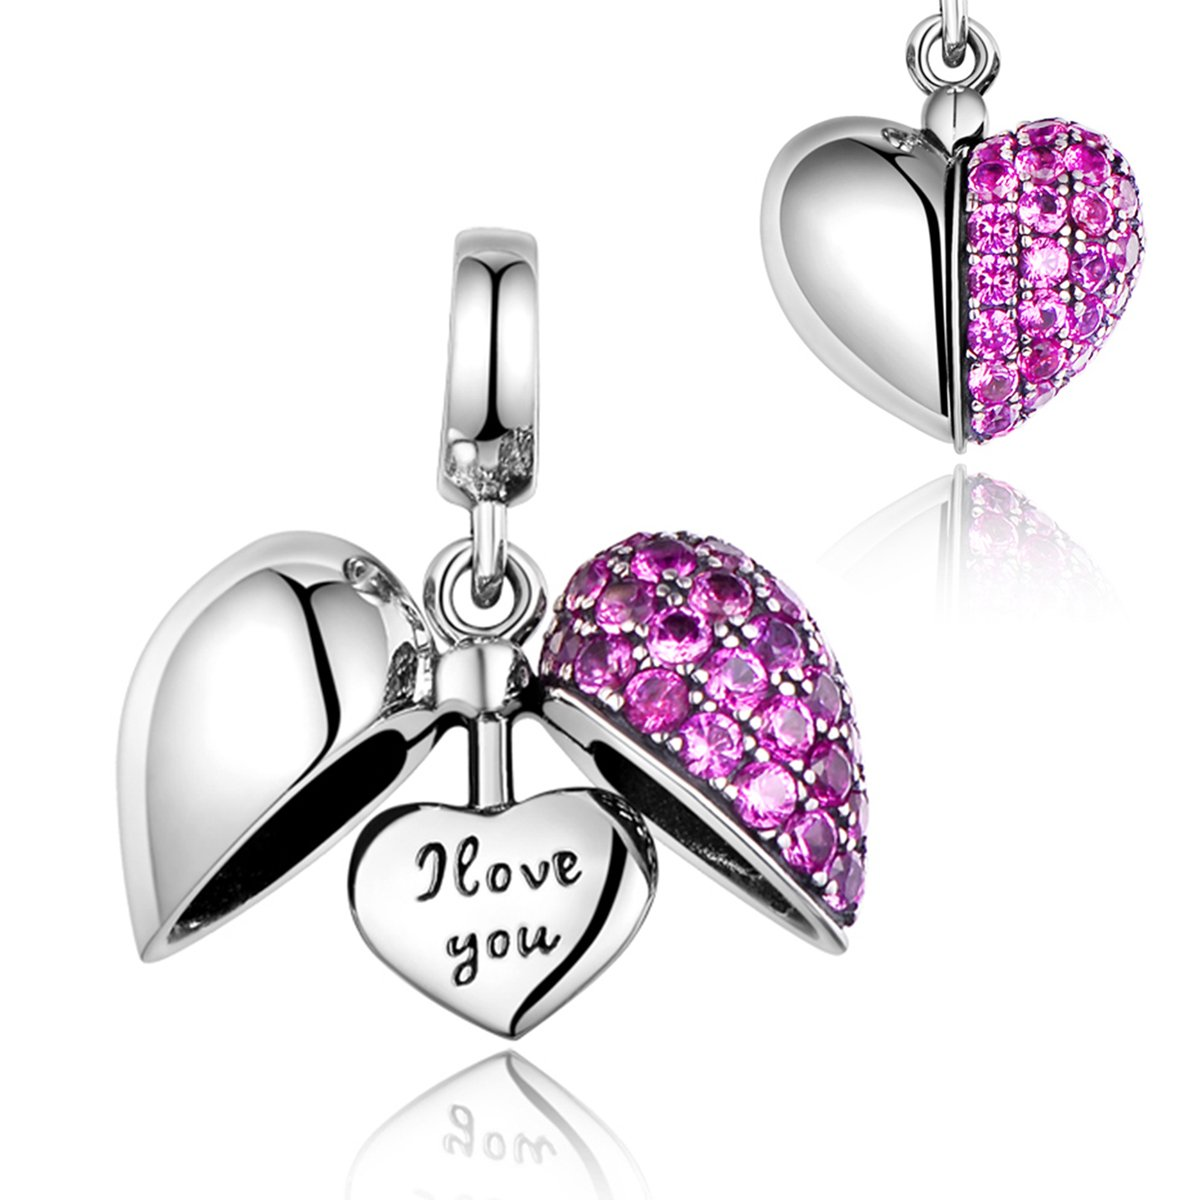 I Love You Heart Dangle Charm Sterling Silver Fit Pandora Bracelets